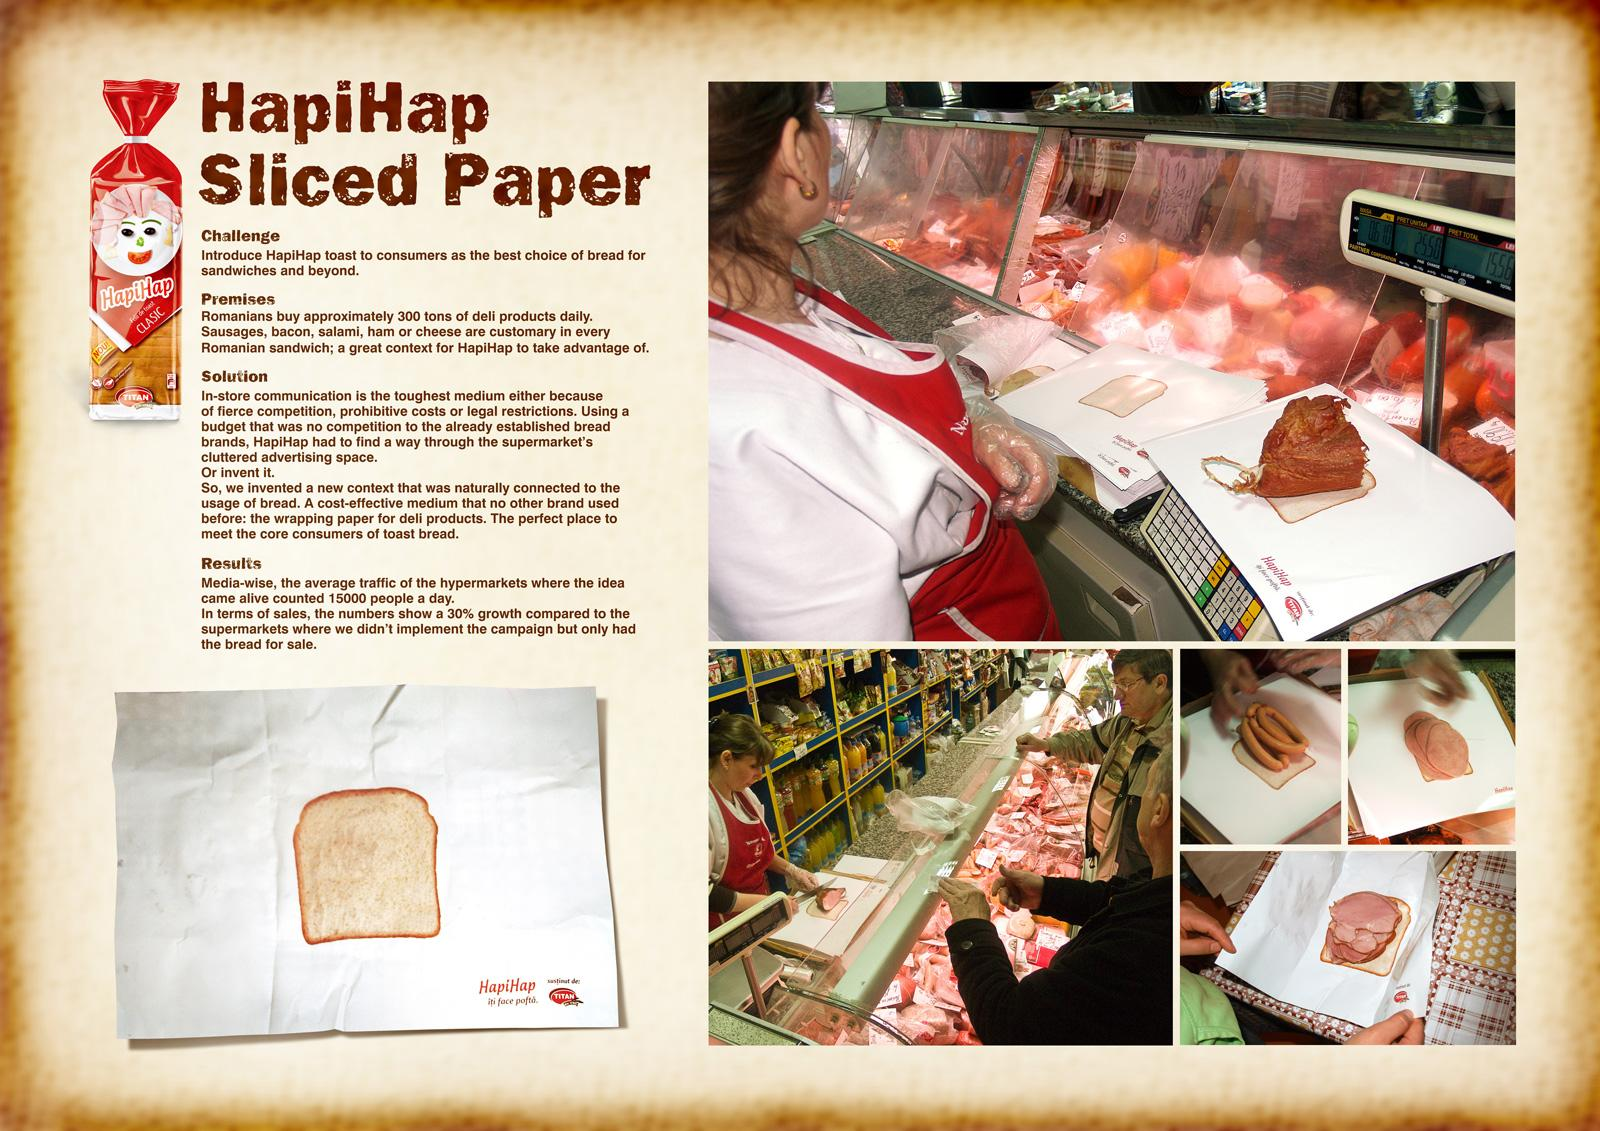 HapiHap Direct Ad -  Sliced Paper